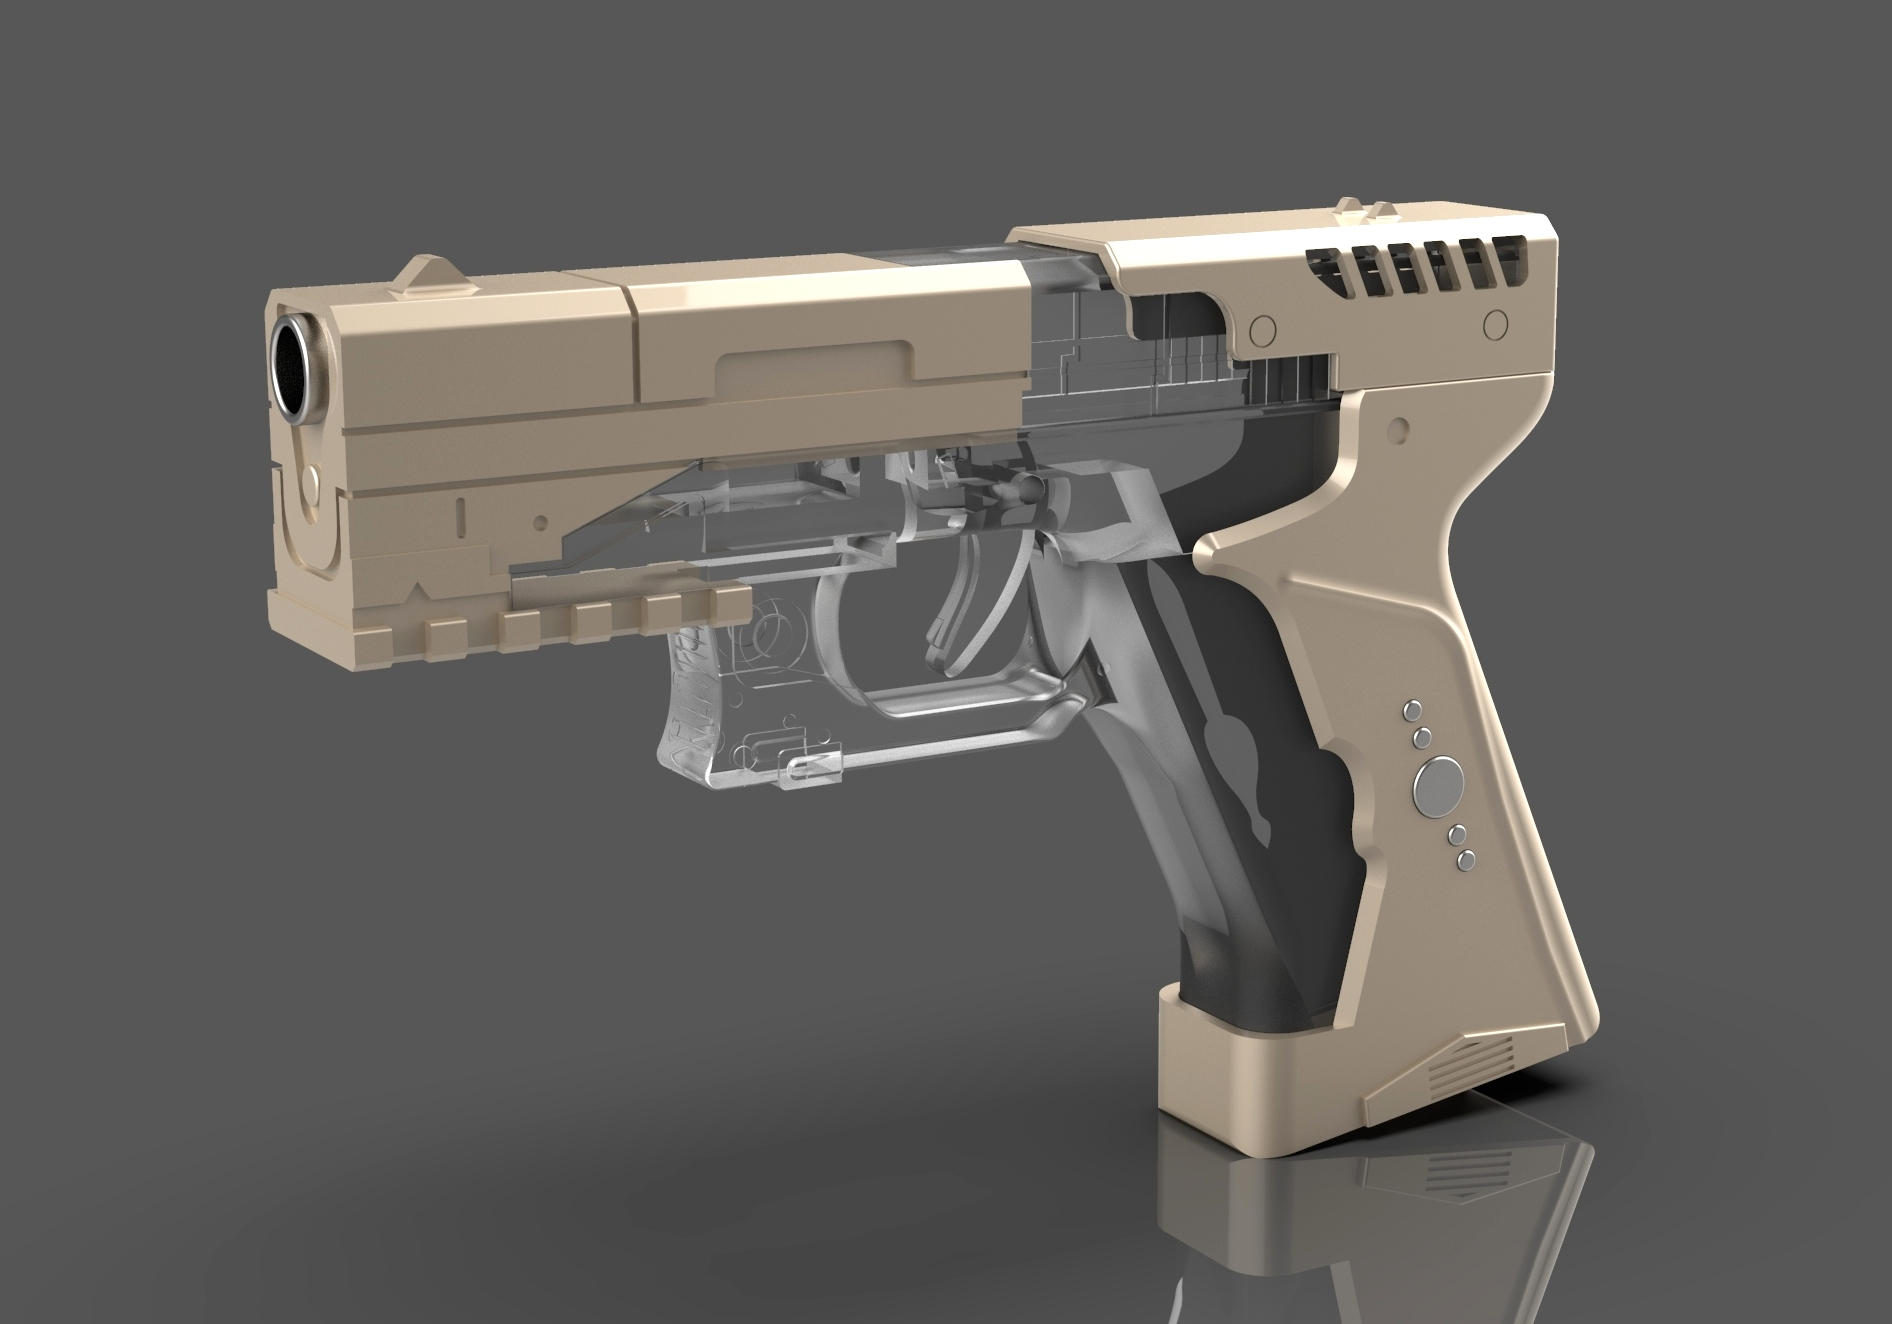 Limited Run Resin Cast Thermoptic Pistol Ghost In The Shell 2nd Run Interest List Rpf Costume And Prop Maker Community